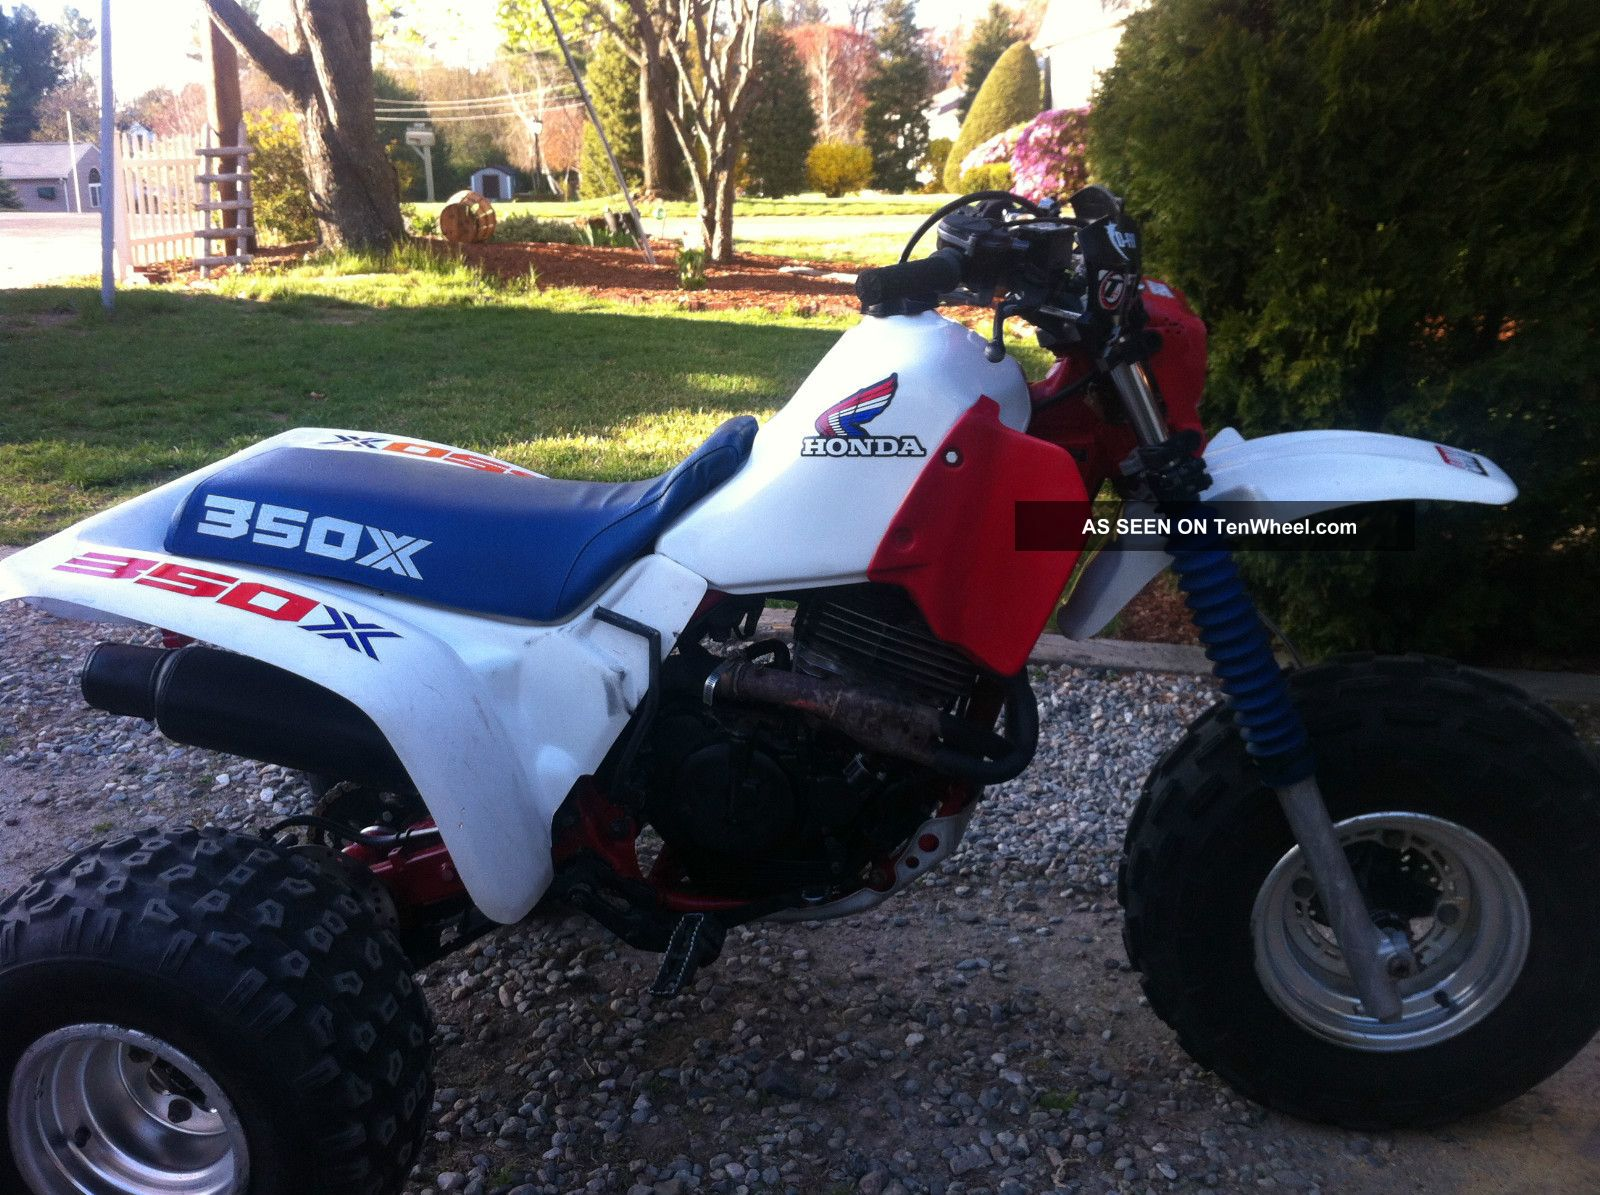 1986 Honda 3 Wheeler 350x Honda photo